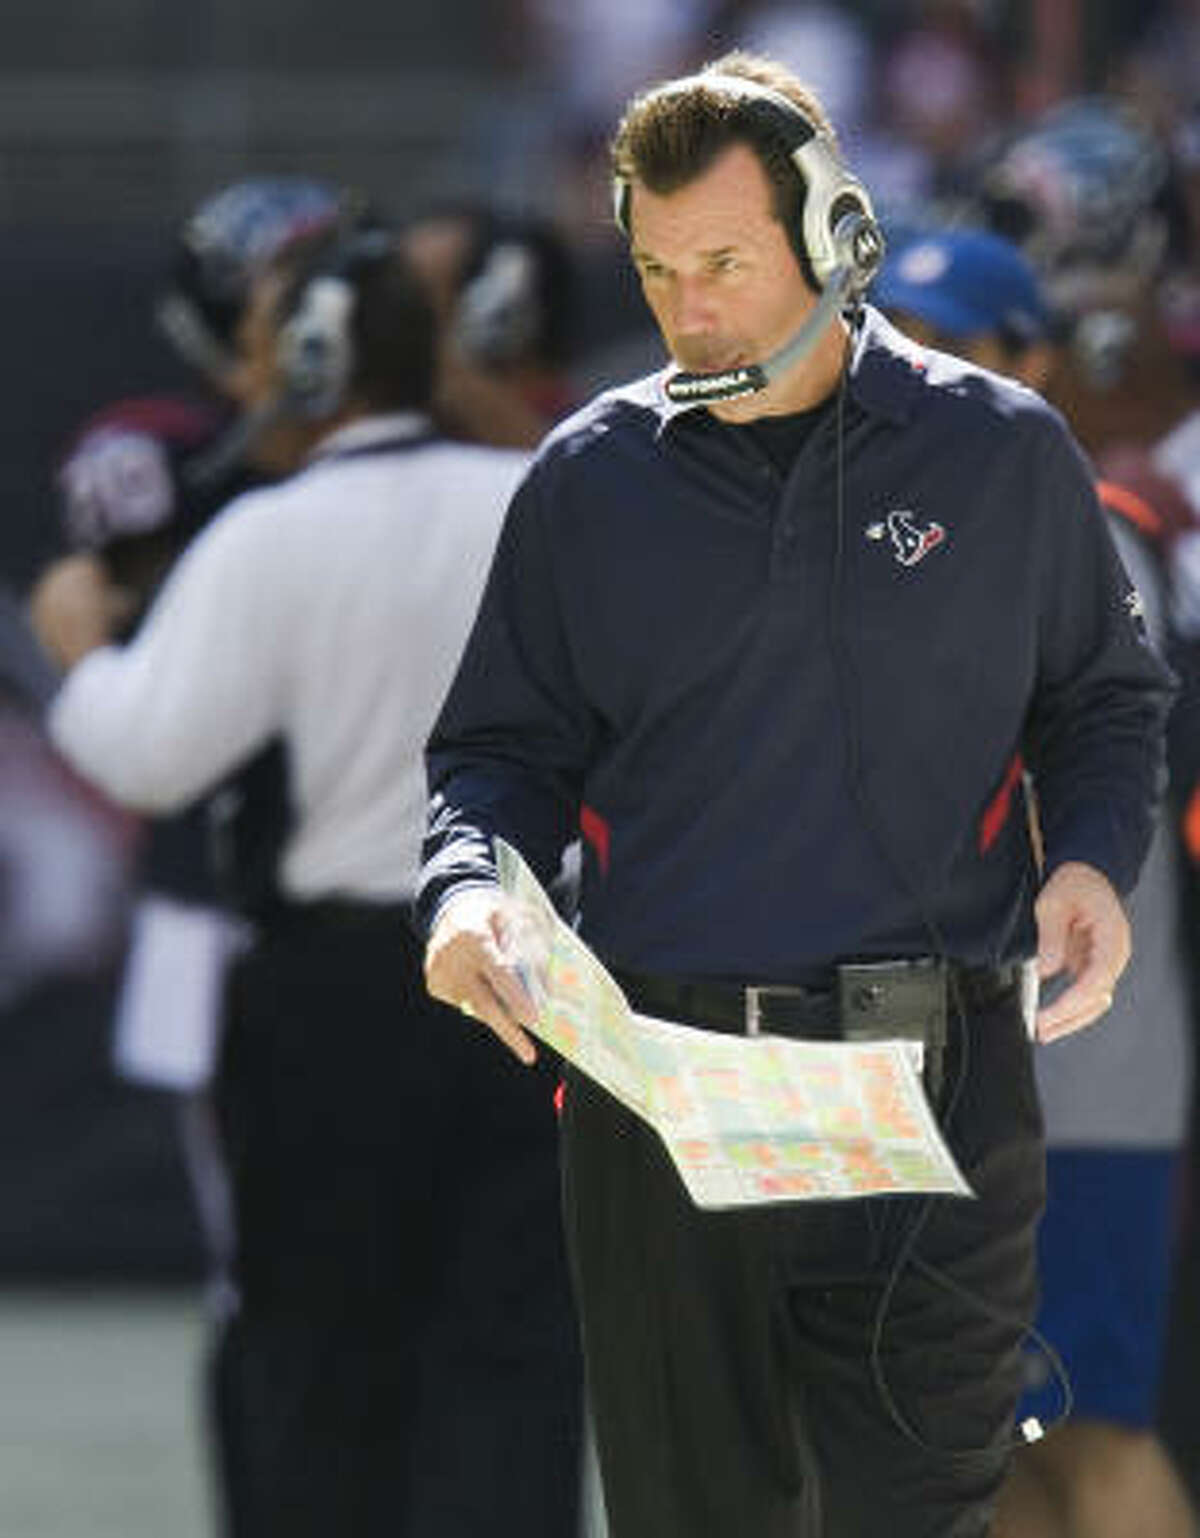 HOLDING STEADY: Coach Gary Kubiak Admit it, you complain about Kubiak when the Texans lose. And you complain when the Texans nearly blow a 21-point lead to the 49ers. But the Texans are on a winning streak for the first time this season, so we'll cut Kubiak some slack.